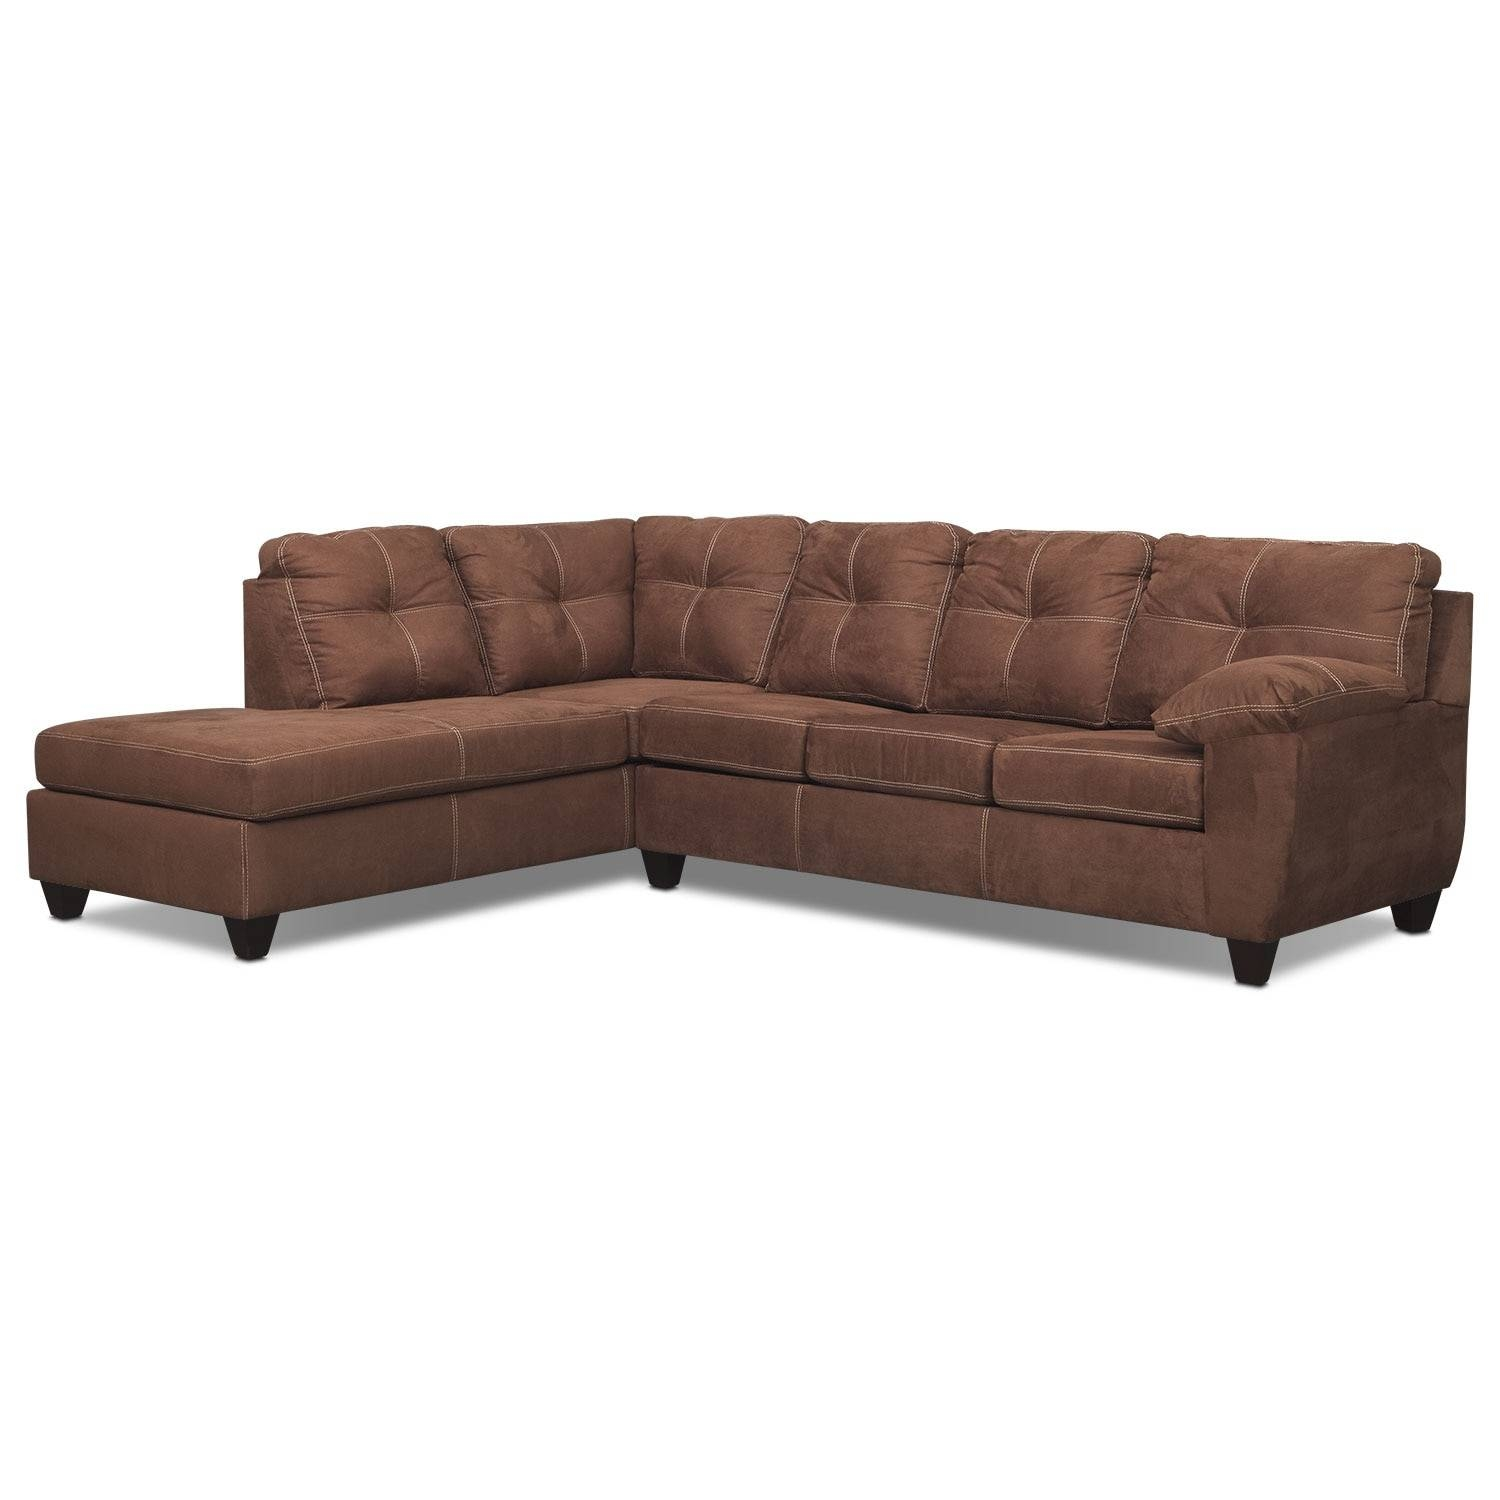 Sleeper Sofas | Value City Furniture | Value City Furniture Regarding Sleeper Sectional Sofas (View 21 of 30)